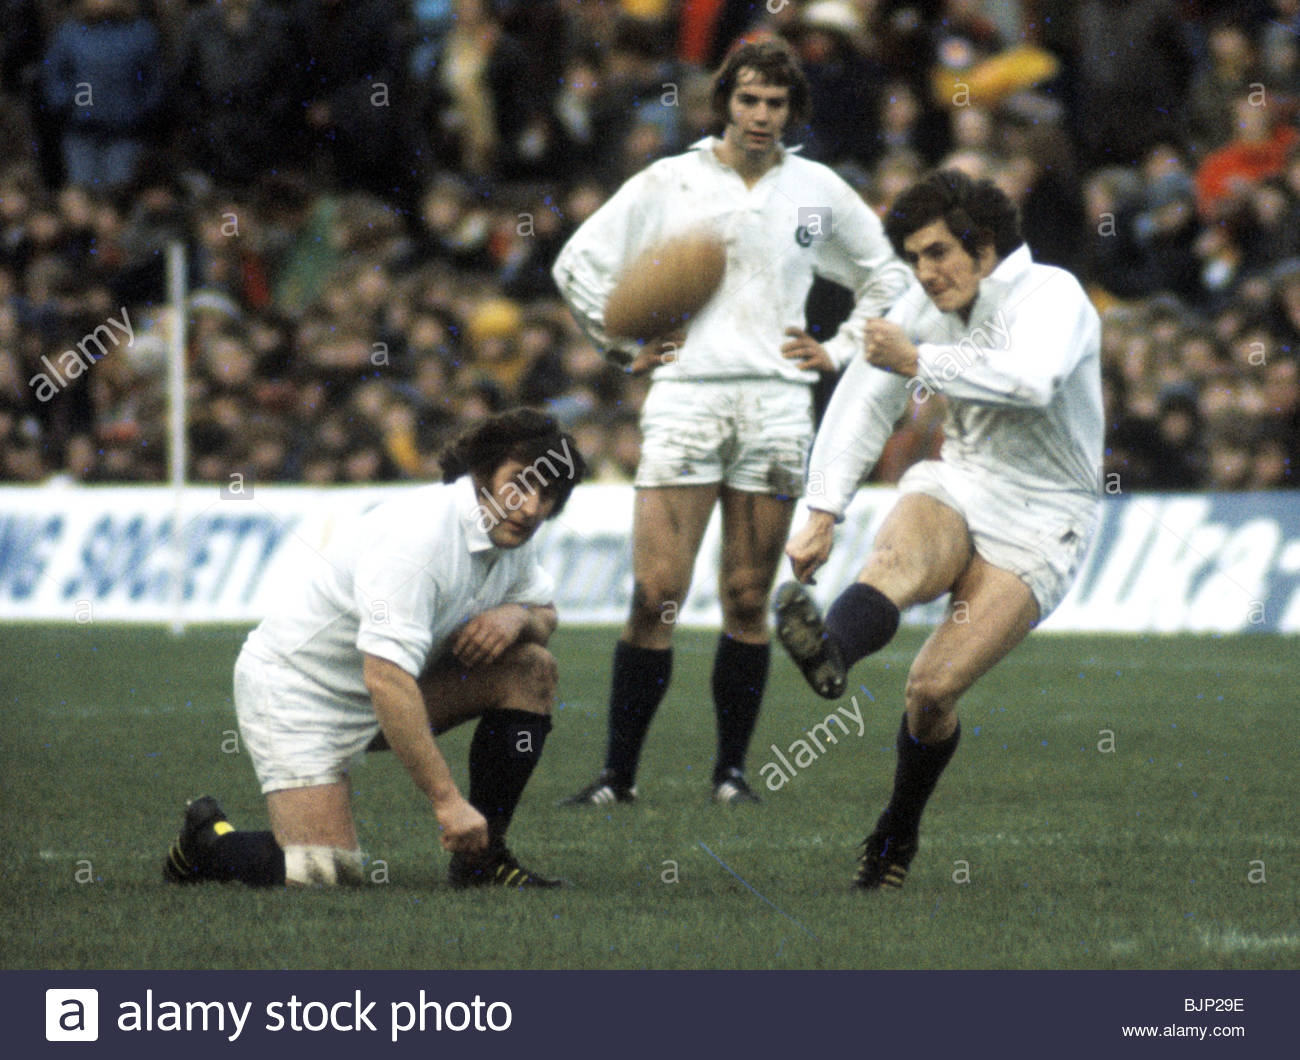 10/01/76 FIVE NATIONS SCOTLAND V FRANCE MURRAYFIELD - EDINBURGH Andy Irvine kicks the ball between the posts to - Stock Image